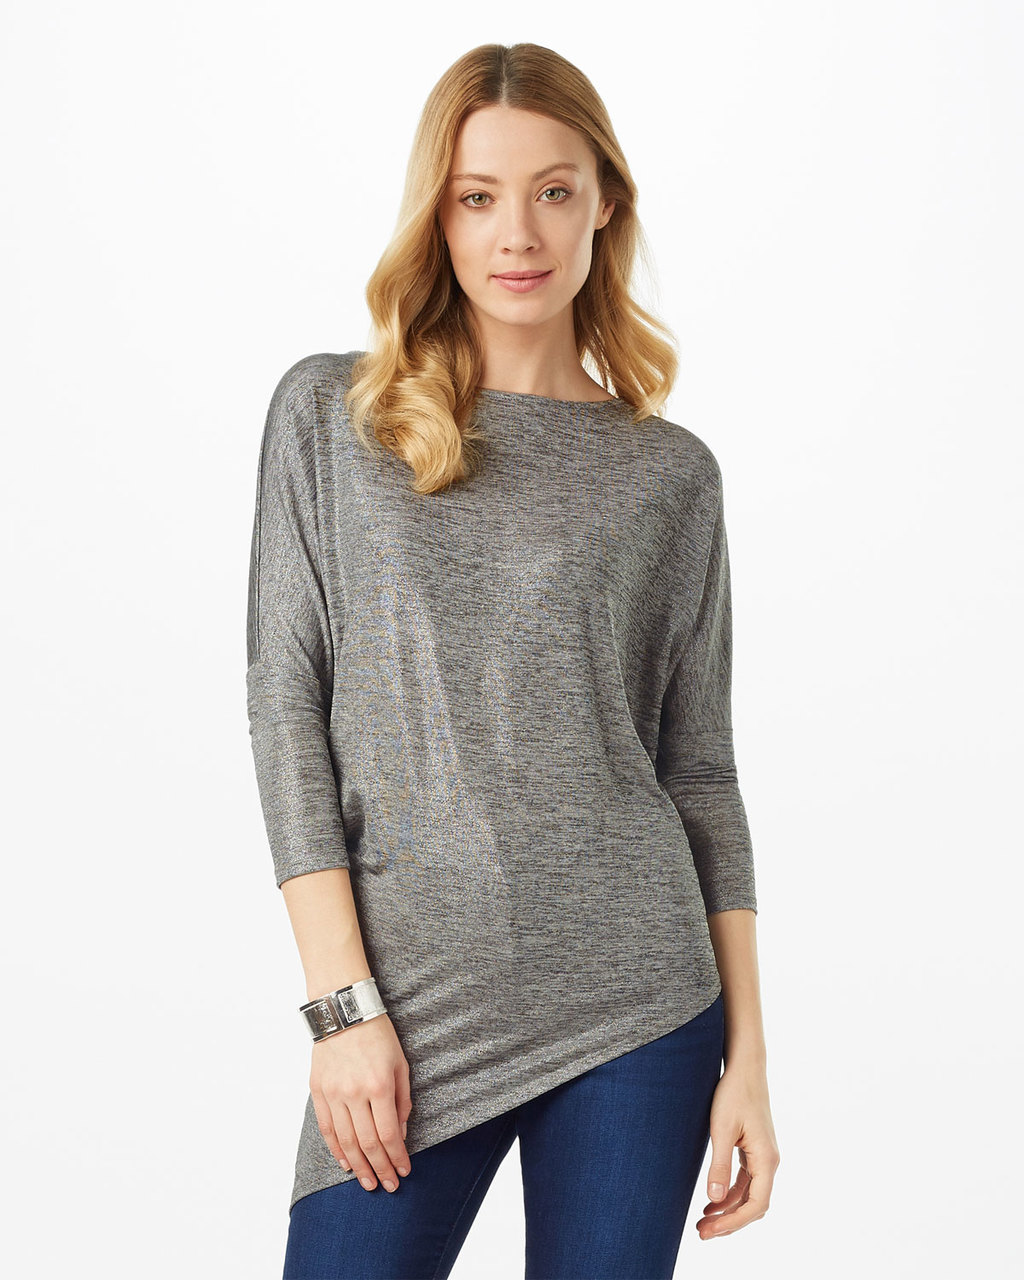 Zoey Lurex Top - pattern: plain; length: below the bottom; predominant colour: light grey; occasions: casual; style: top; fibres: polyester/polyamide - mix; fit: body skimming; neckline: crew; sleeve length: 3/4 length; sleeve style: standard; pattern type: fabric; texture group: jersey - stretchy/drapey; season: s/s 2016; wardrobe: basic